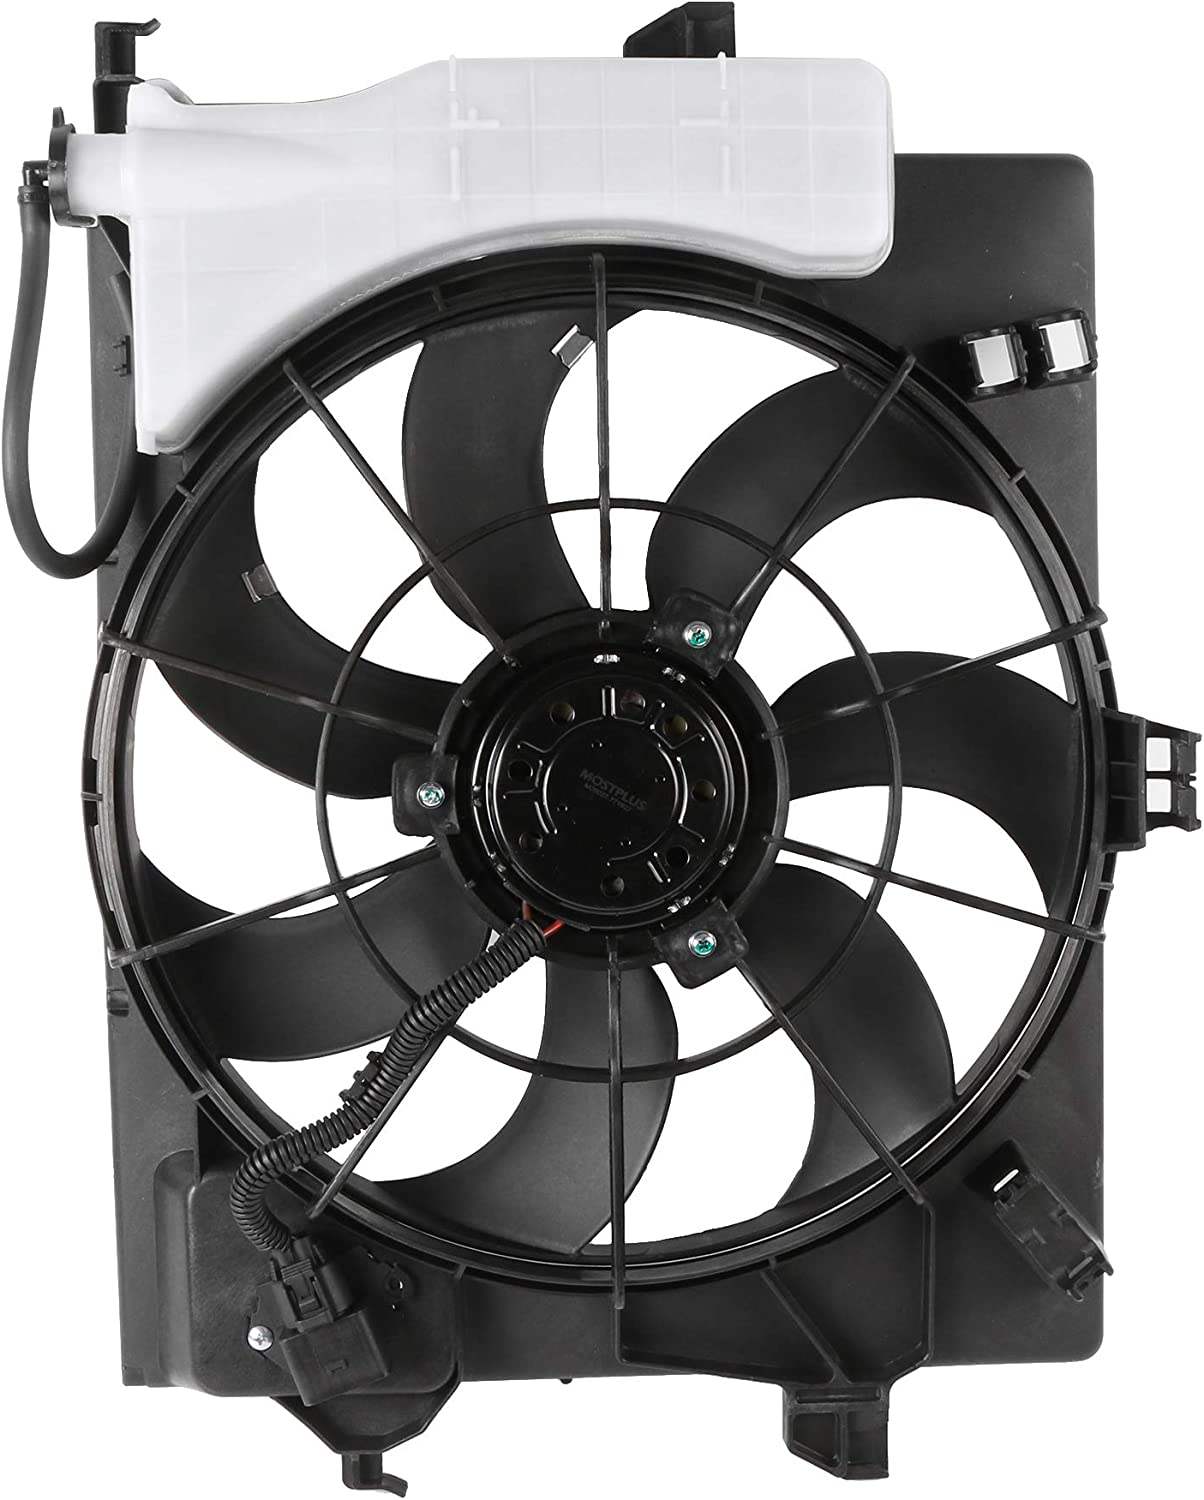 MOSTPLUS 1PC Black Radiator Cooling Fan Assembly 253801R050 622590 Compatible for Hyundai 2012-2013 1.6L